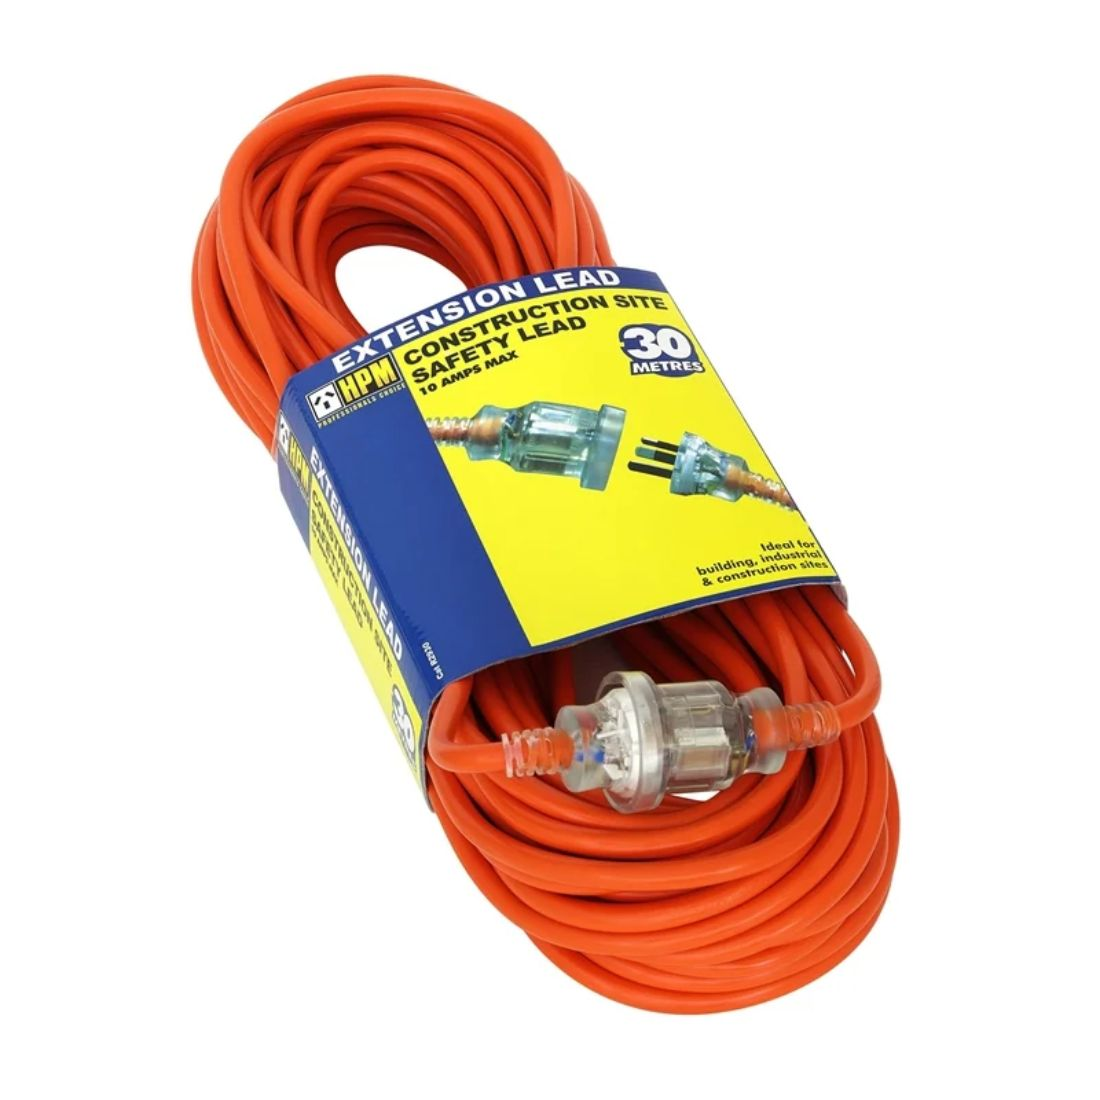 HPM 30m 10Ah Heavy Duty Extension Lead